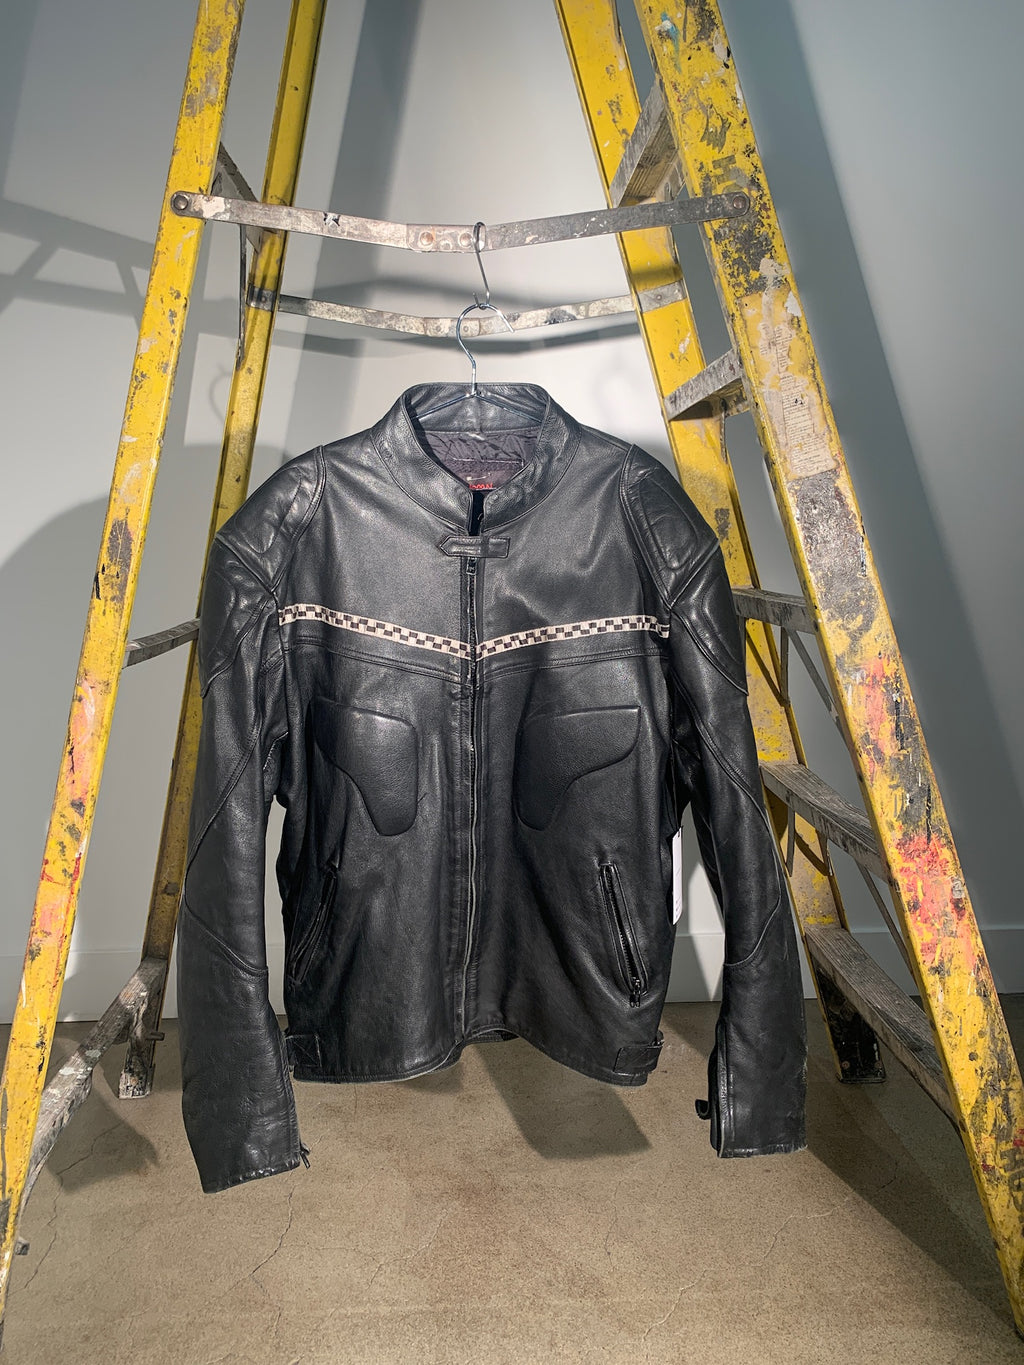 1/1 SMV LEATHER & CHECKERED MOTOCROSS JACKET